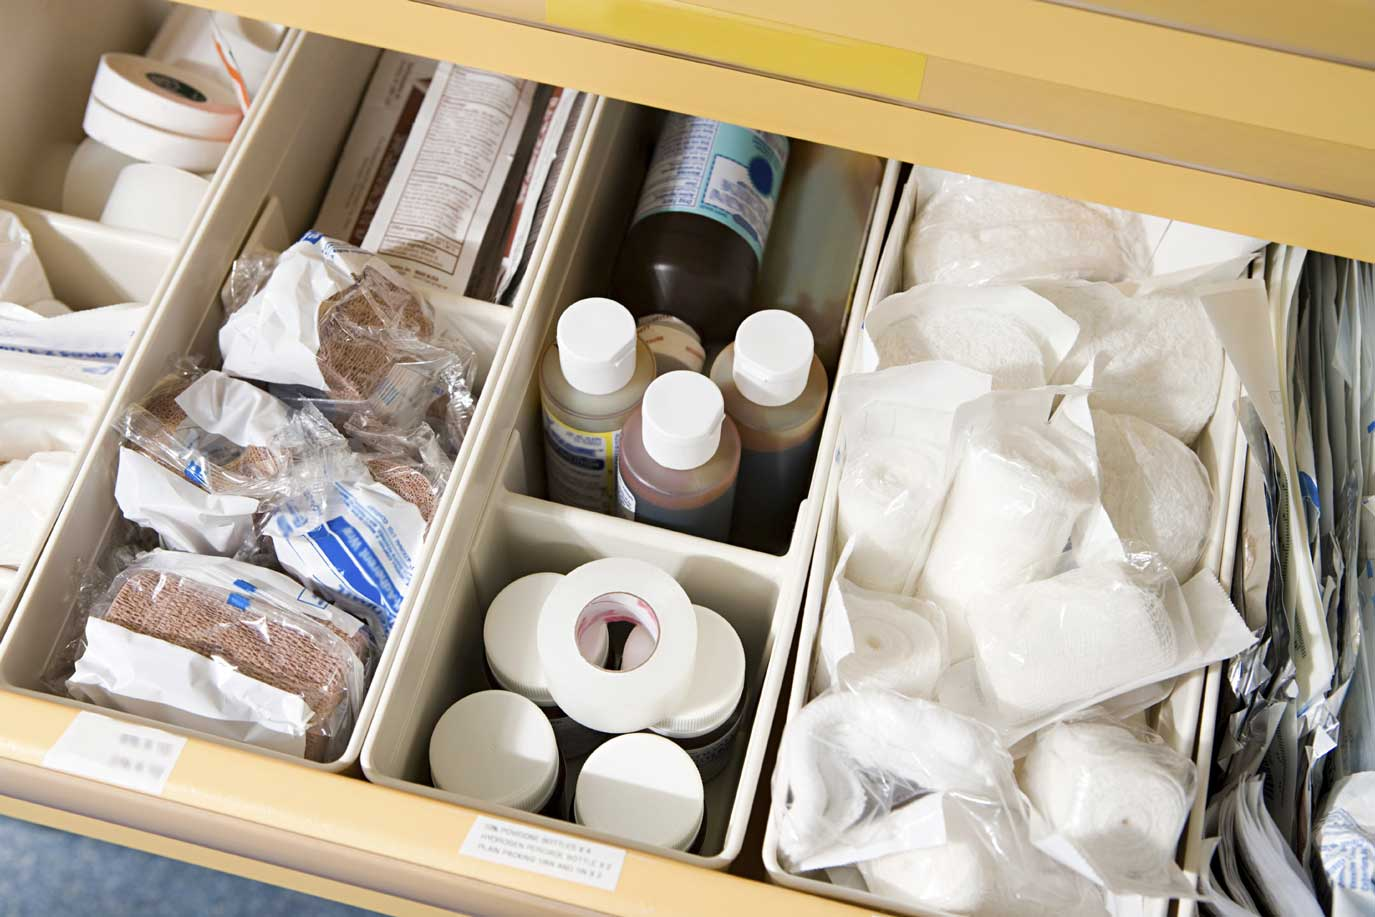 Medical Products in drawer